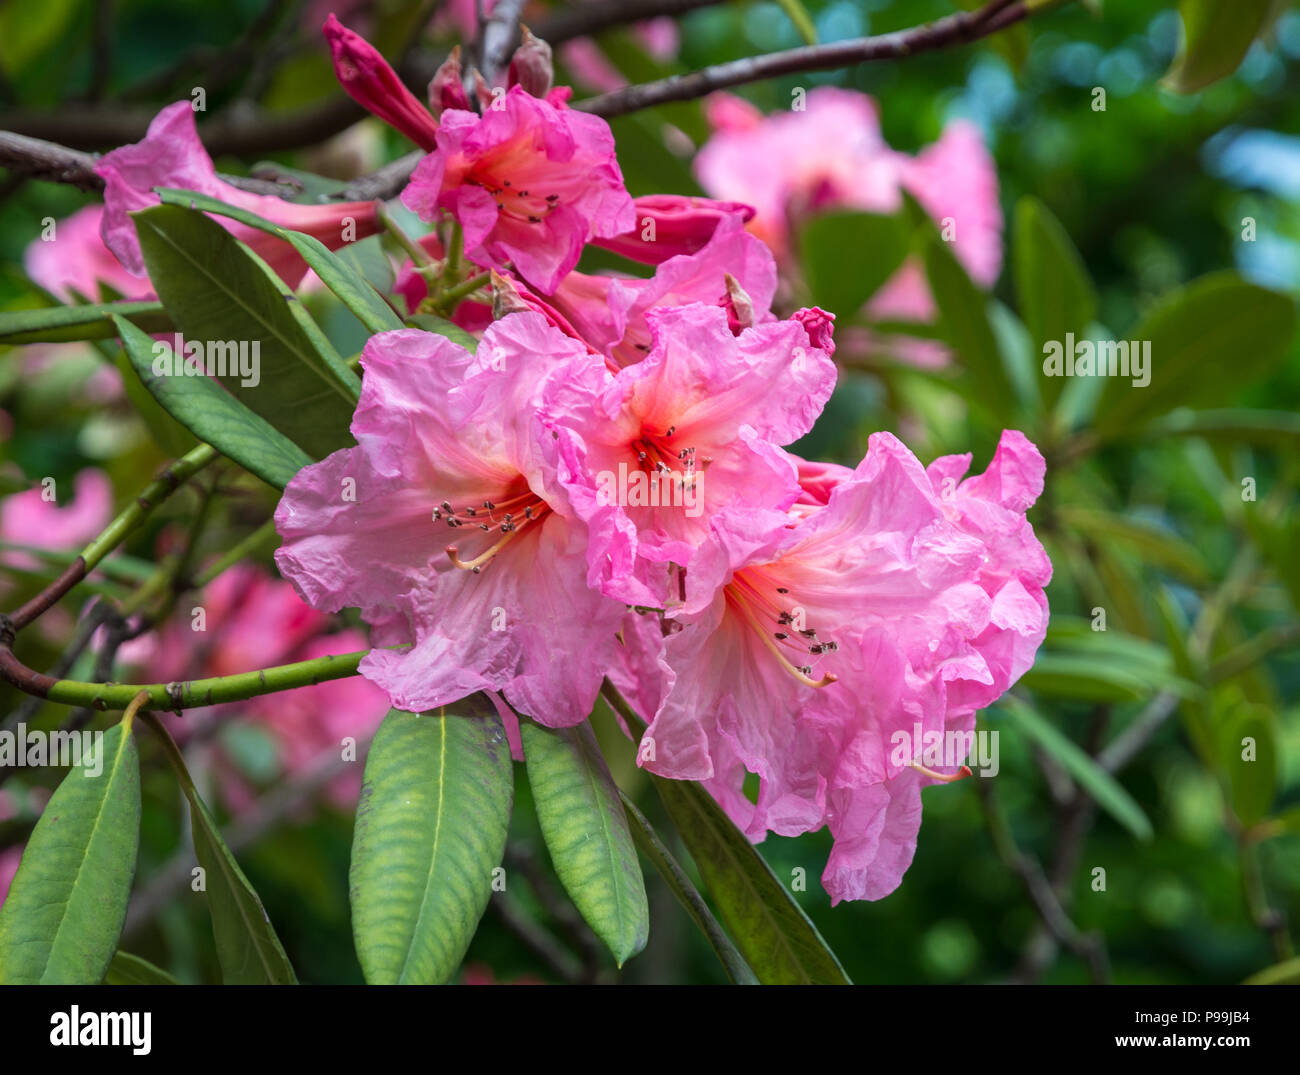 Rhododendron tree flowers.(Rhododendron arboreum). Ebony pearl flowers of Rhododendron tree. - Stock Image